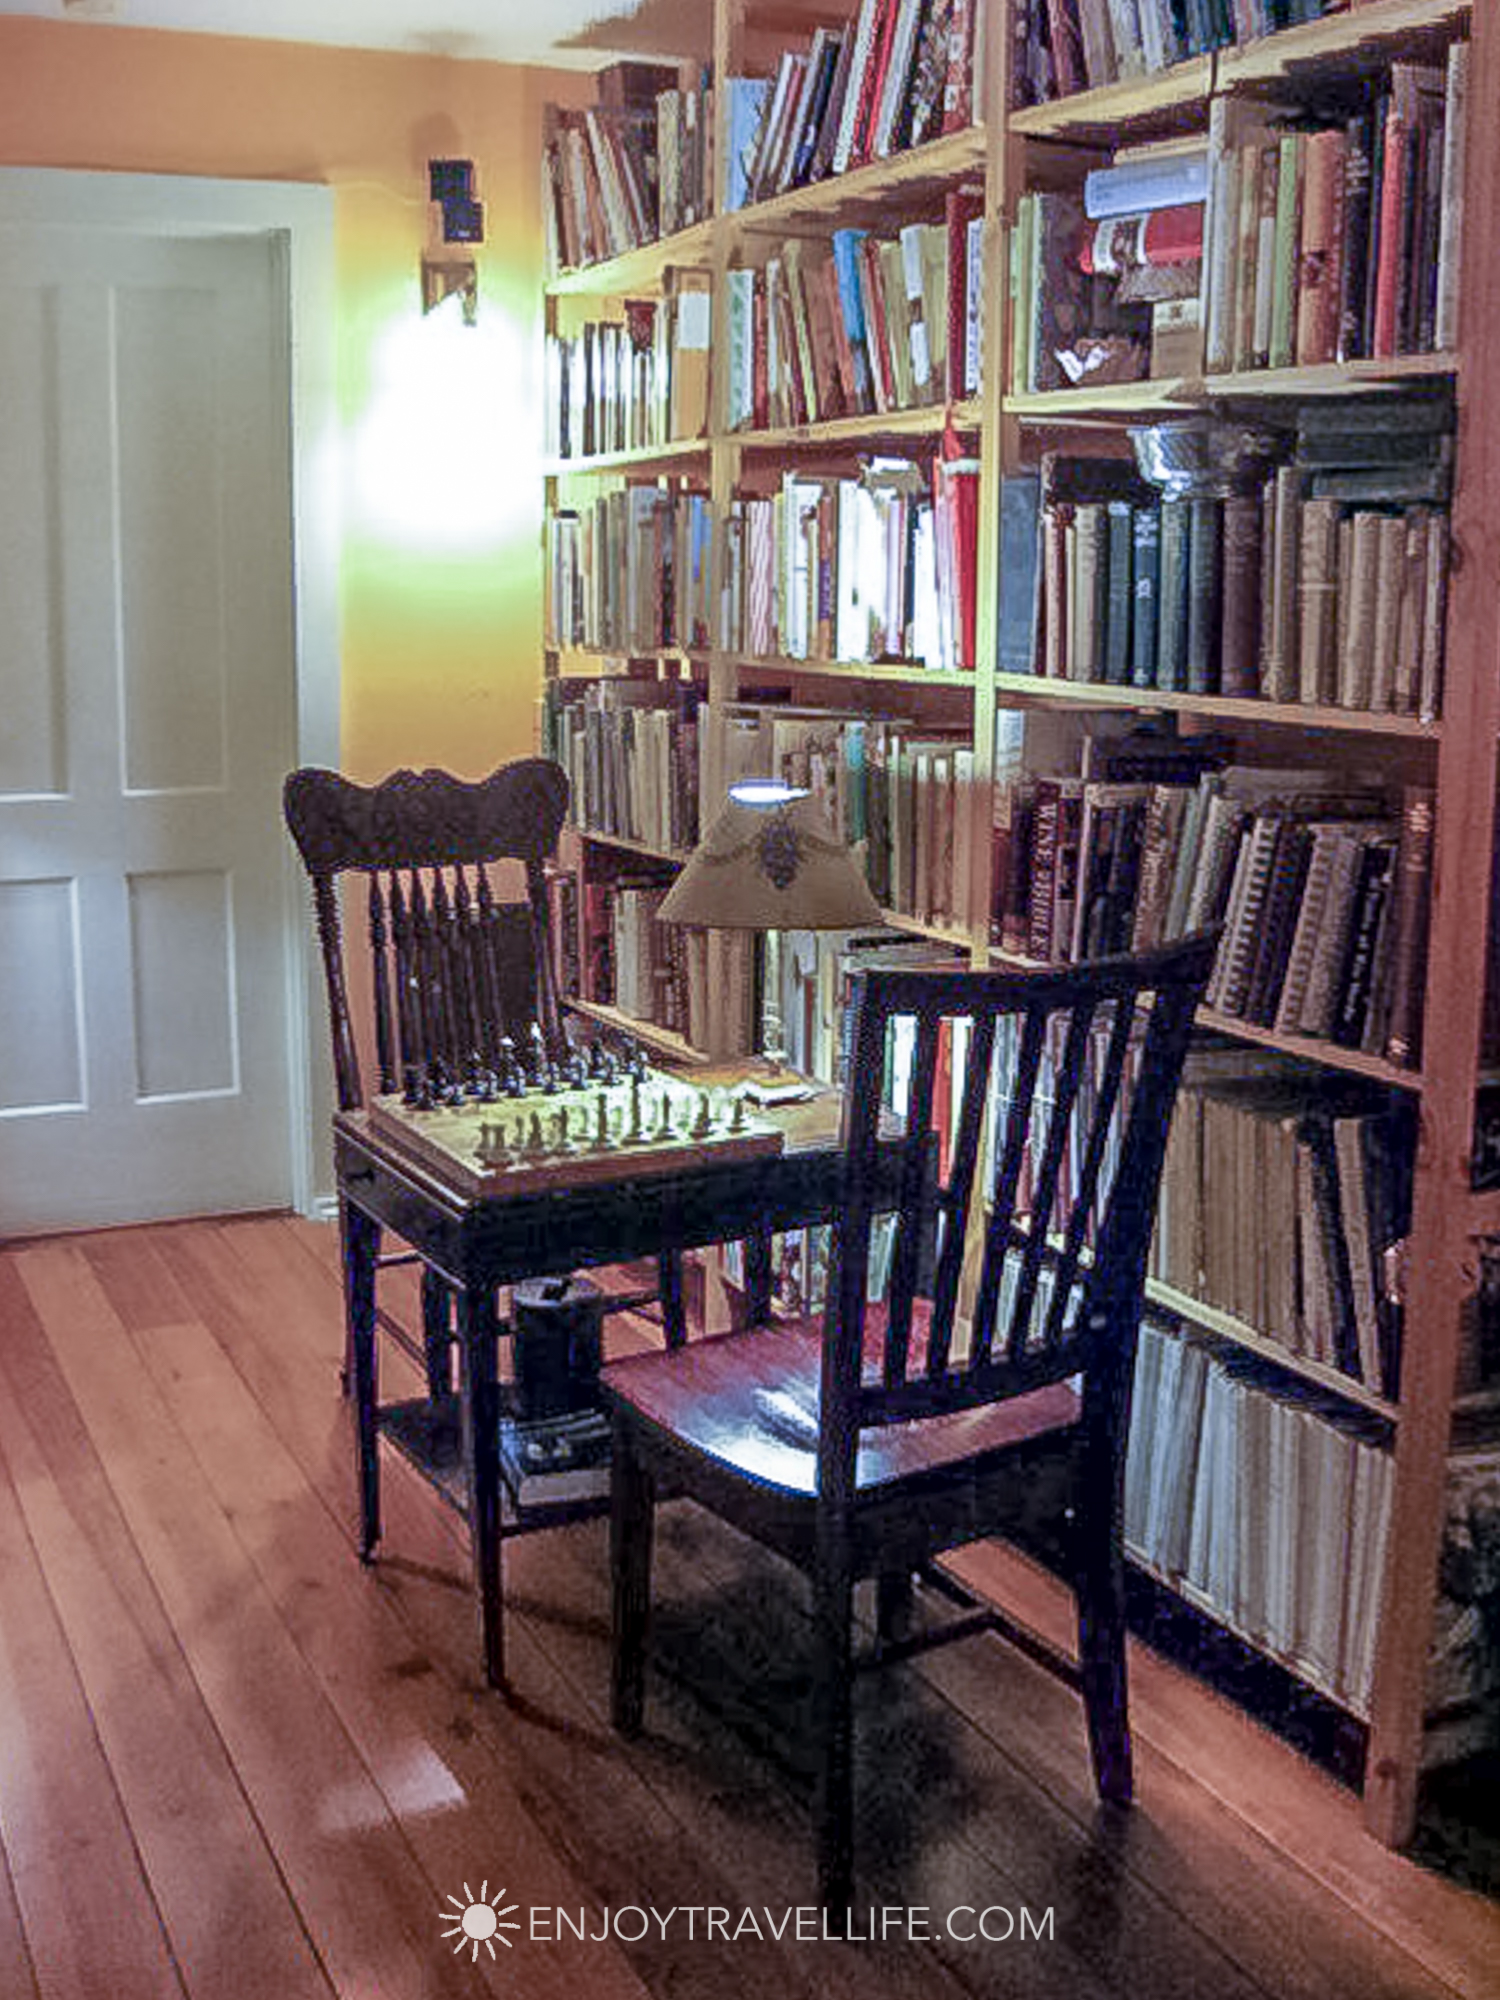 Comfort and Foodie Heaven at The Inn at Sweet Water Farm - Library